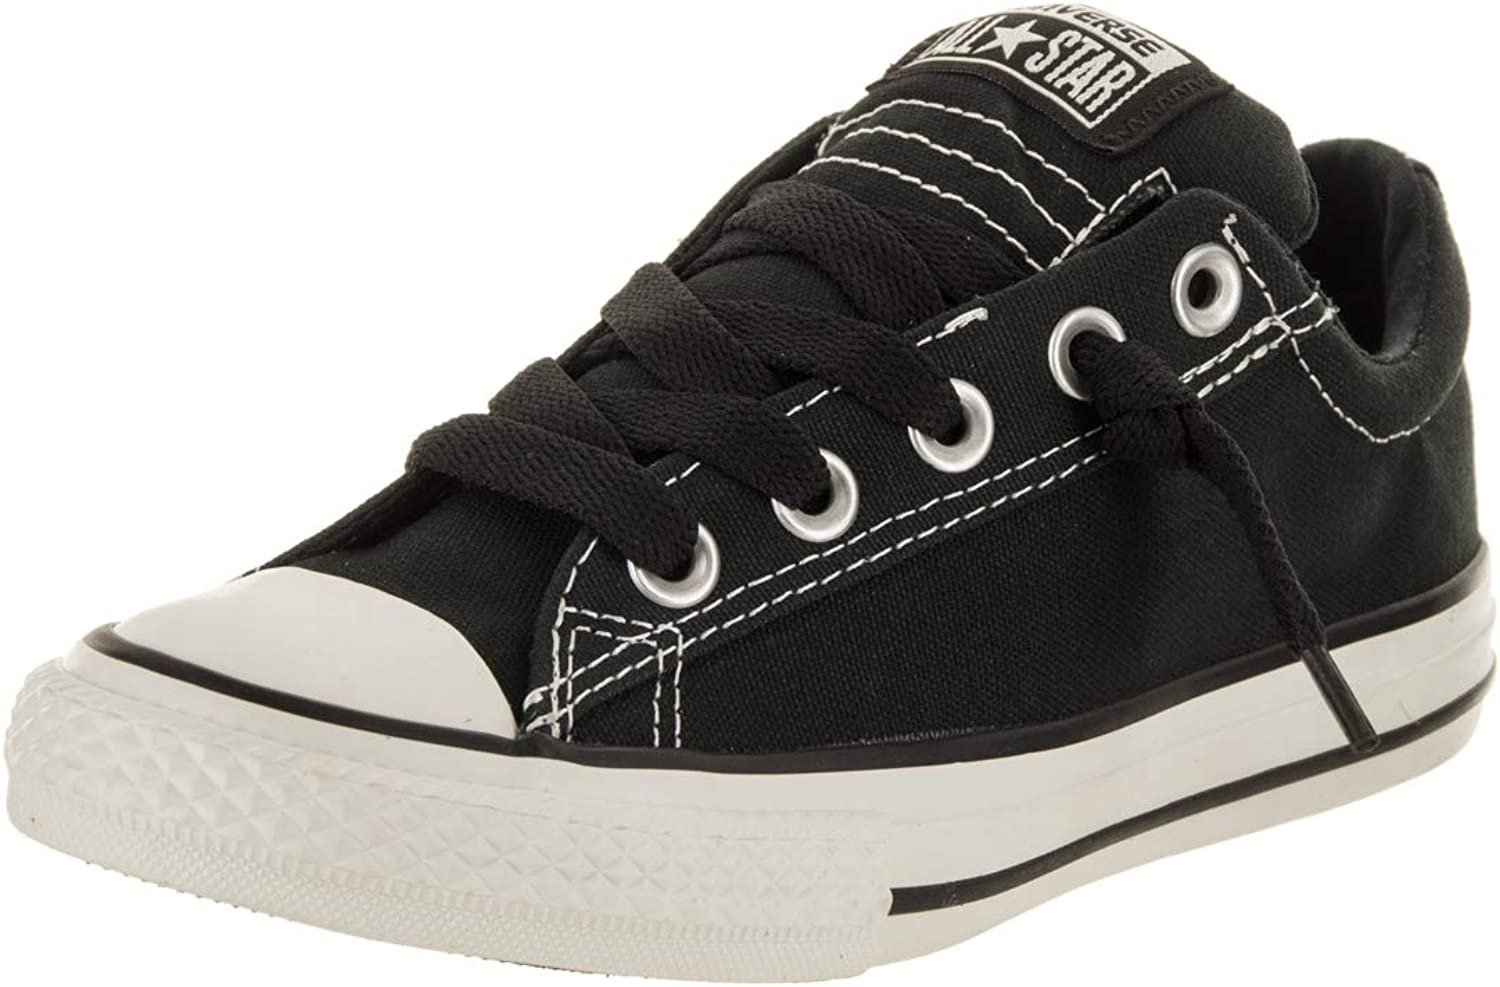 Converse Kids Chuck Taylor All Star Street Slip Casual shoes